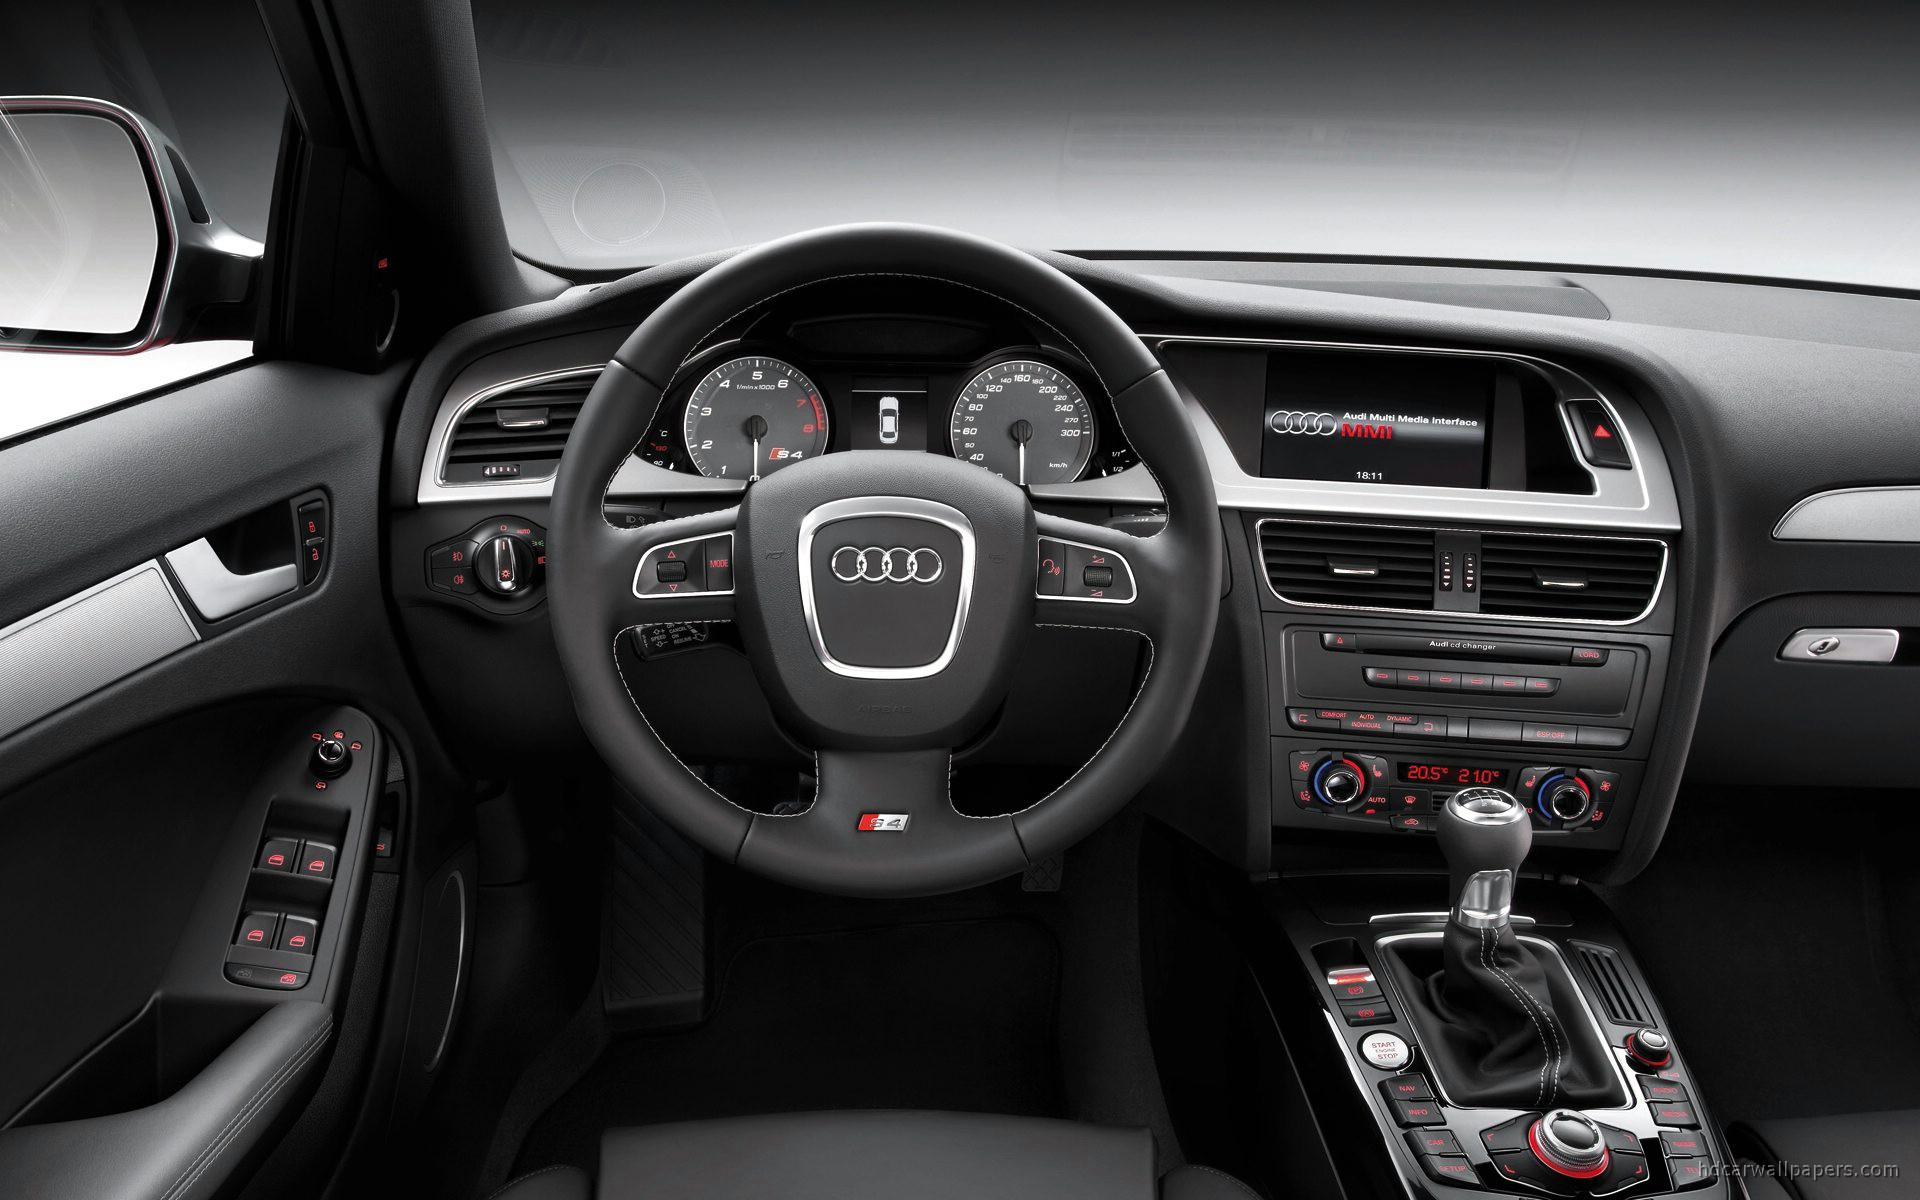 2009 audi s4 interior wallpaper hd car wallpapers id 78. Black Bedroom Furniture Sets. Home Design Ideas